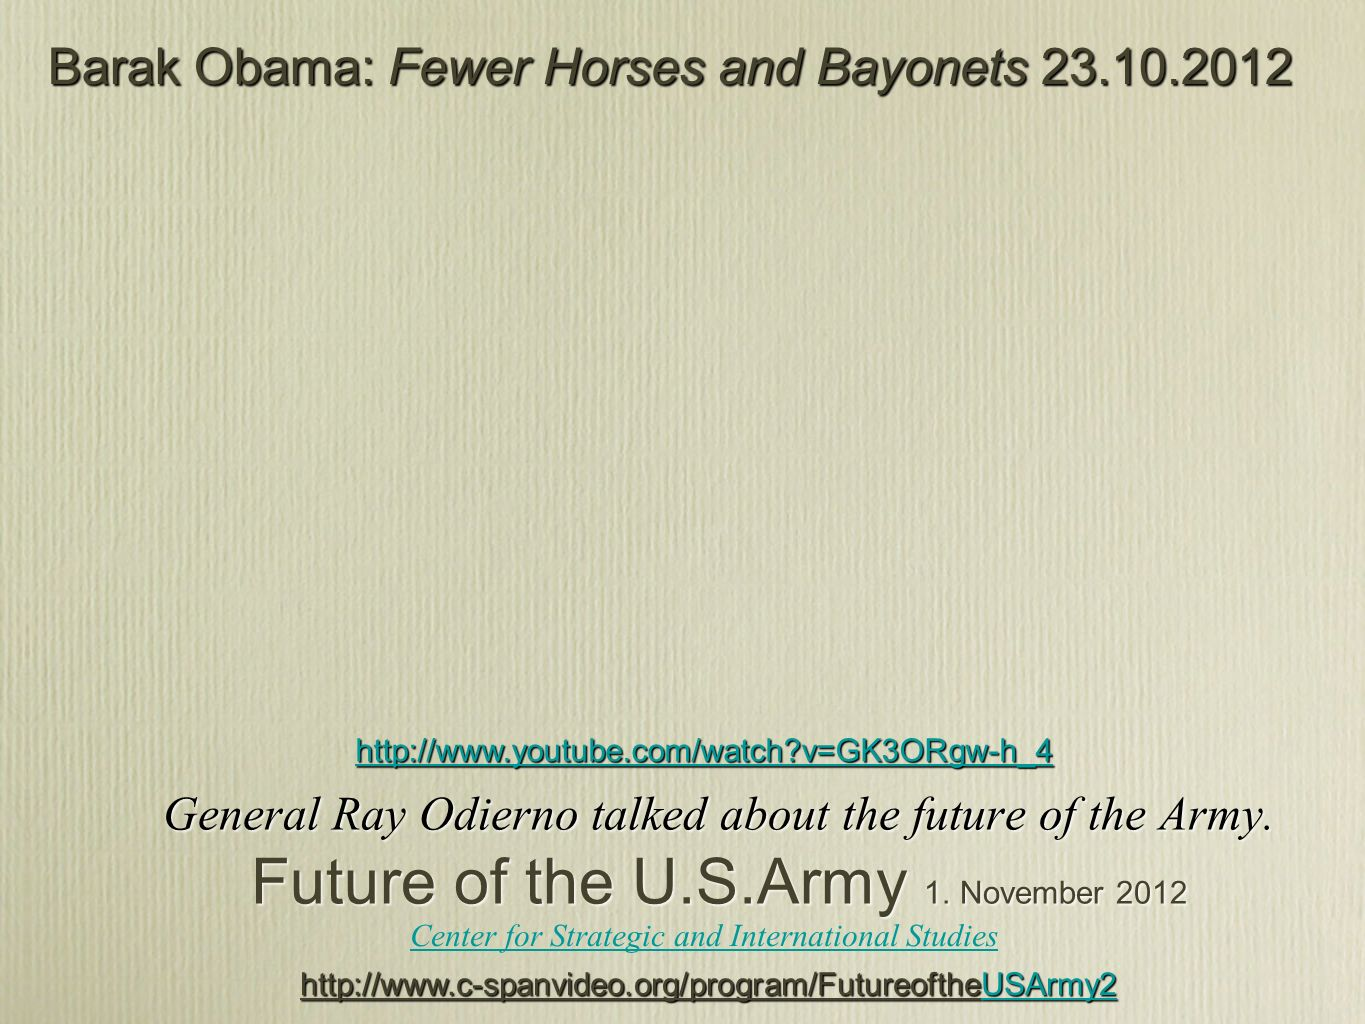 Barak Obama: Fewer Horses and Bayonets 23.10.2012